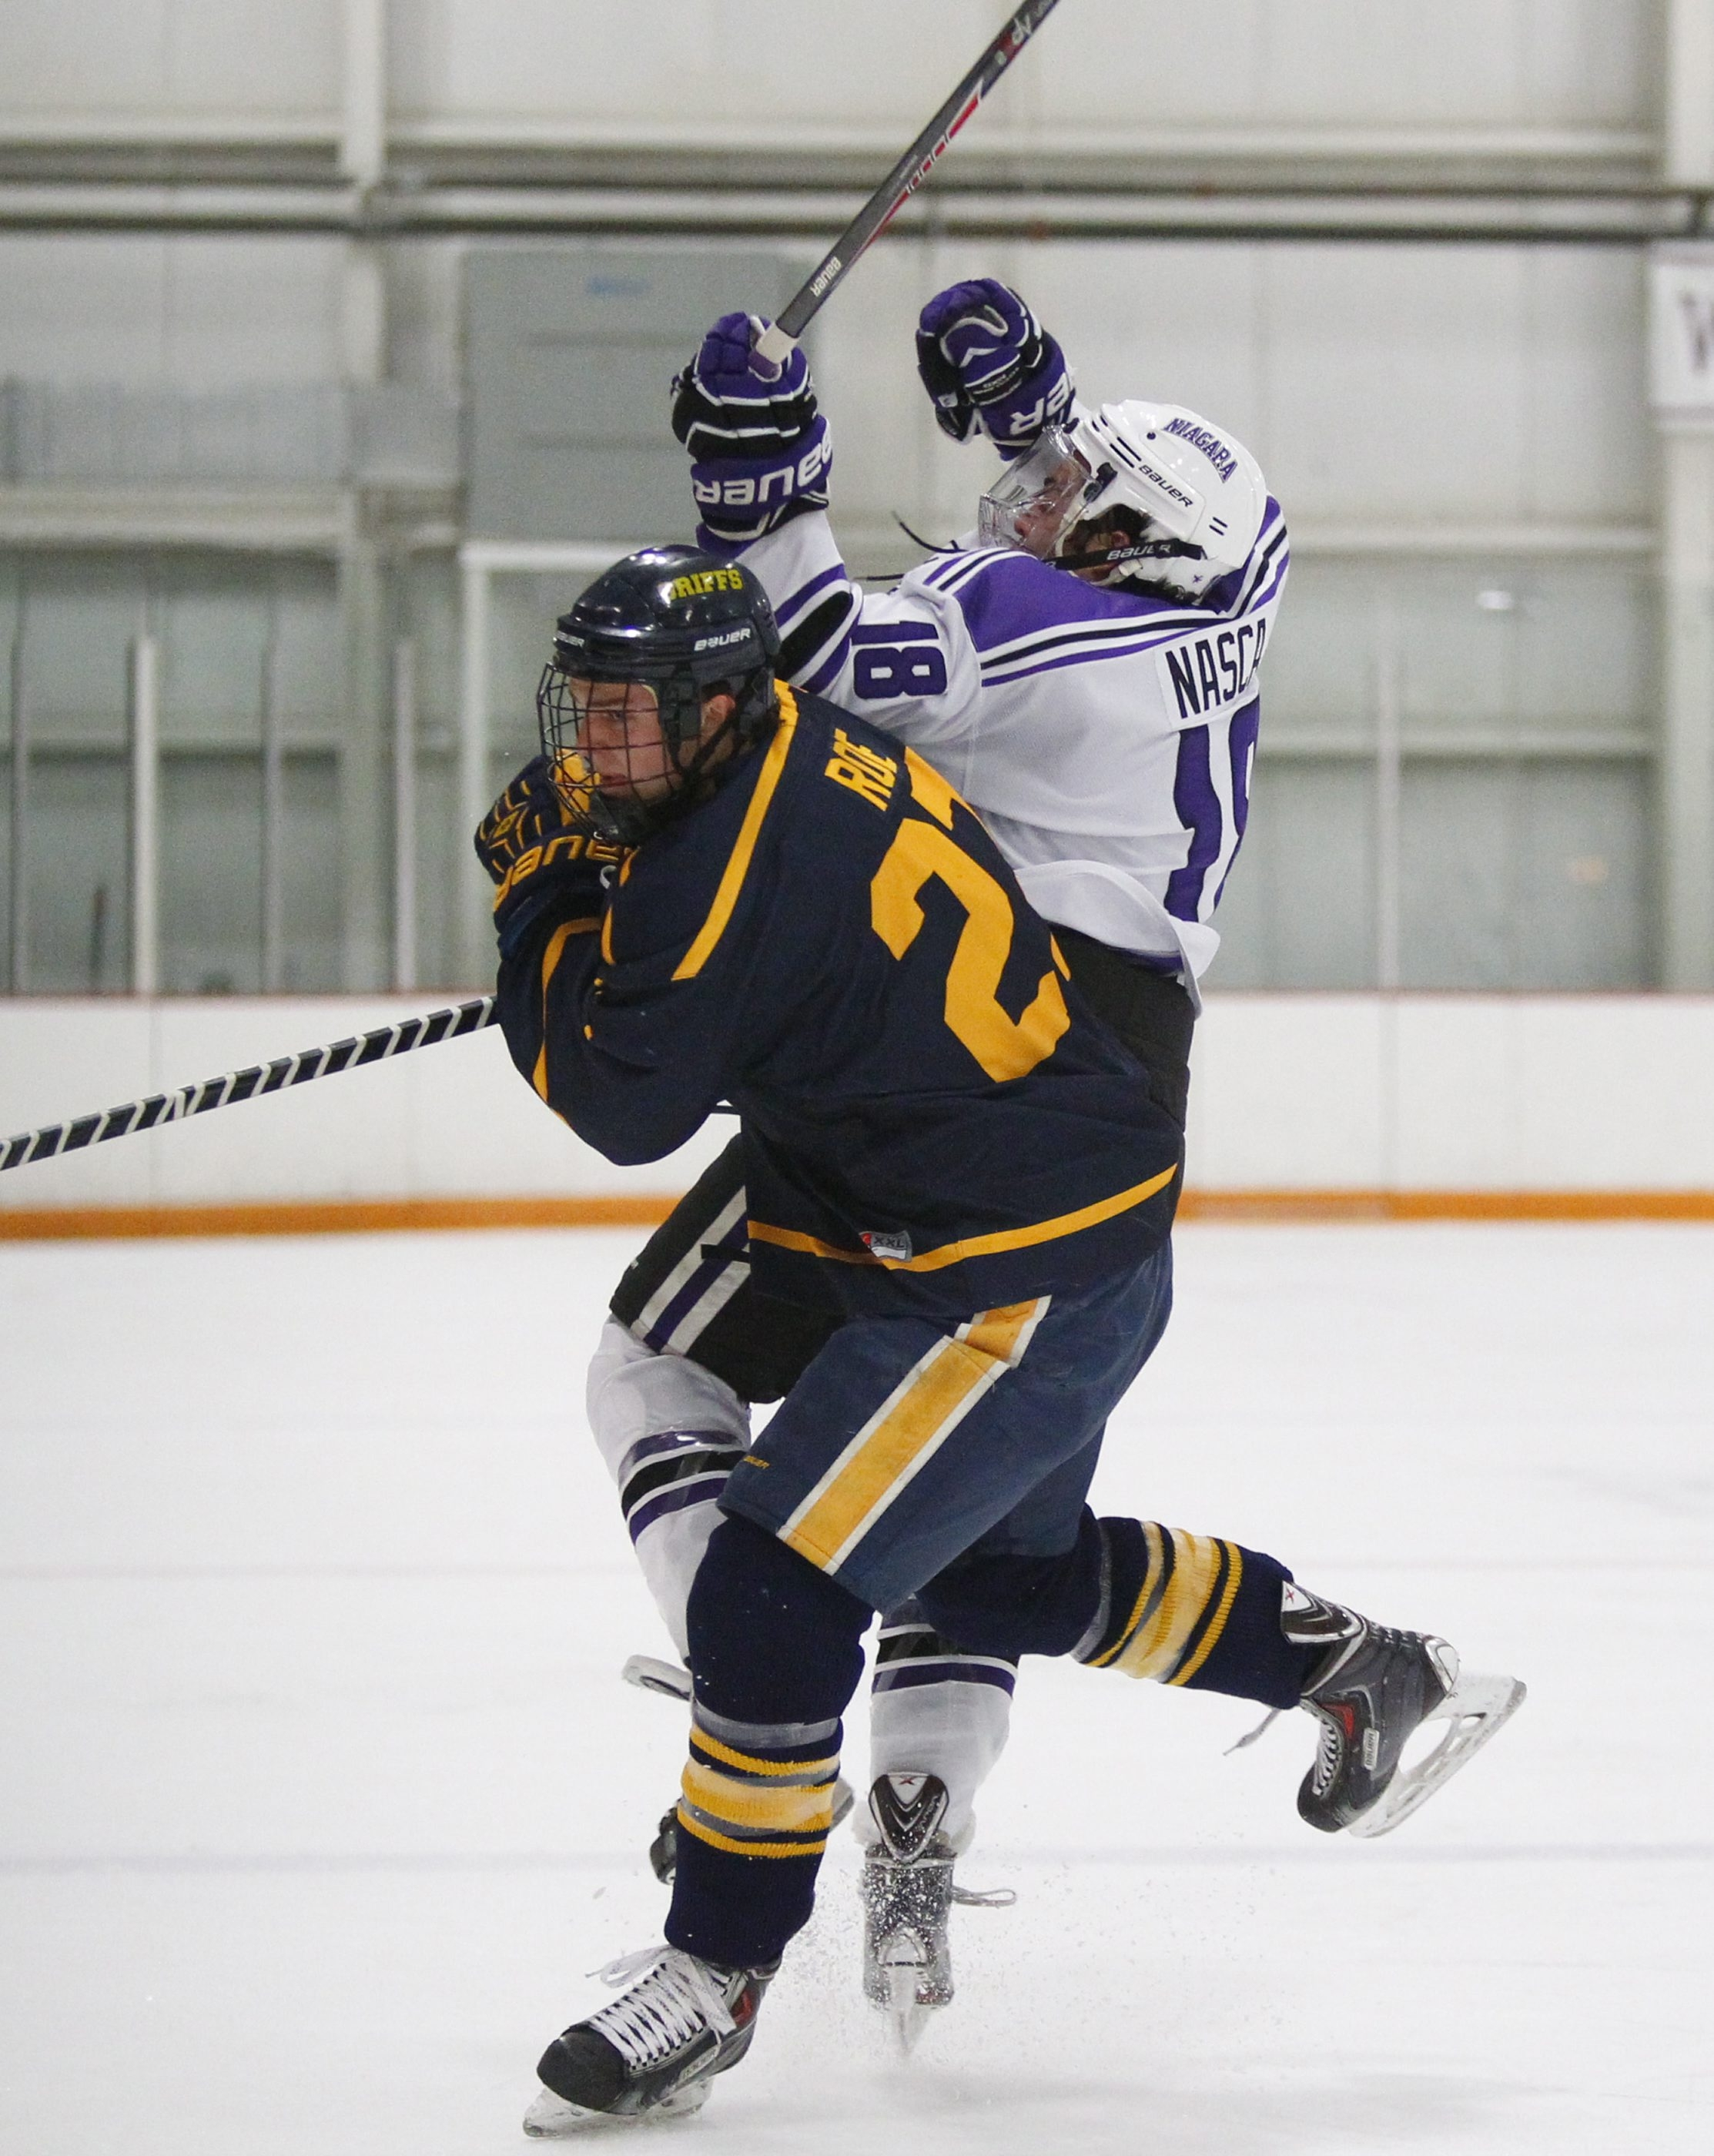 Phil Nasca and Niagara, right, will tangle with Logan Roe and Canisius tonight.